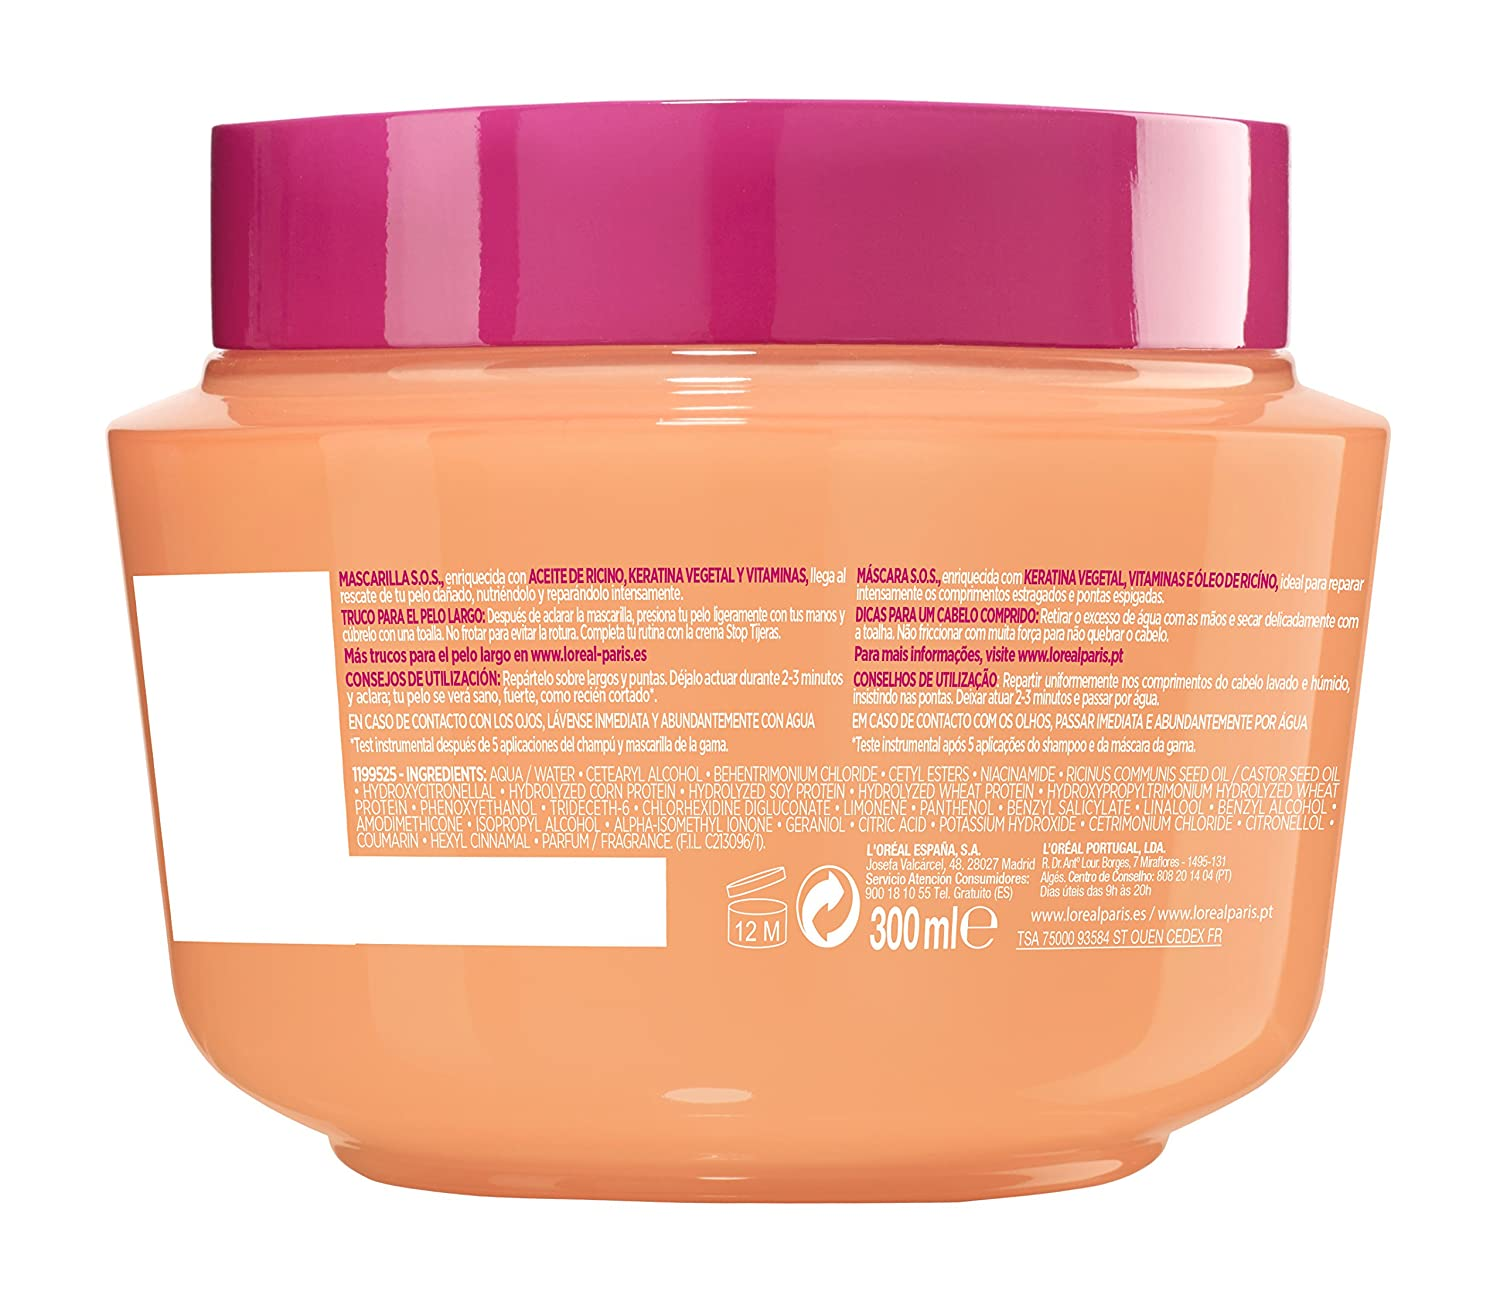 LOréal Paris Elvive S.O.S. Dream Long Mascarilla - 300 ml: Amazon.es: Amazon Pantry